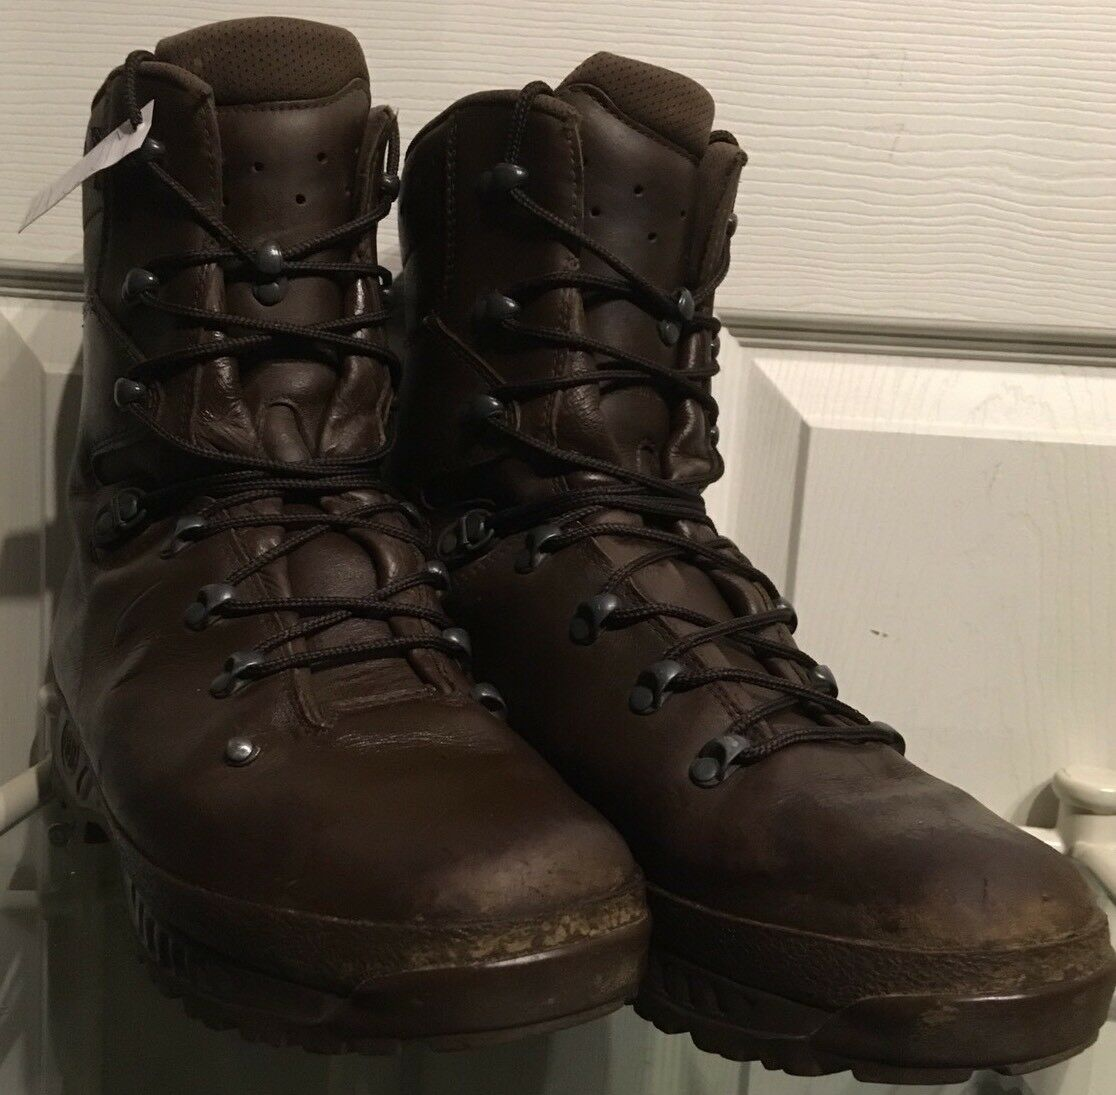 Haix Marrón MTP GoreTex Waterproof Army botas Issue Wet Weather Hiking botas Army 12M HX212M 3c9477